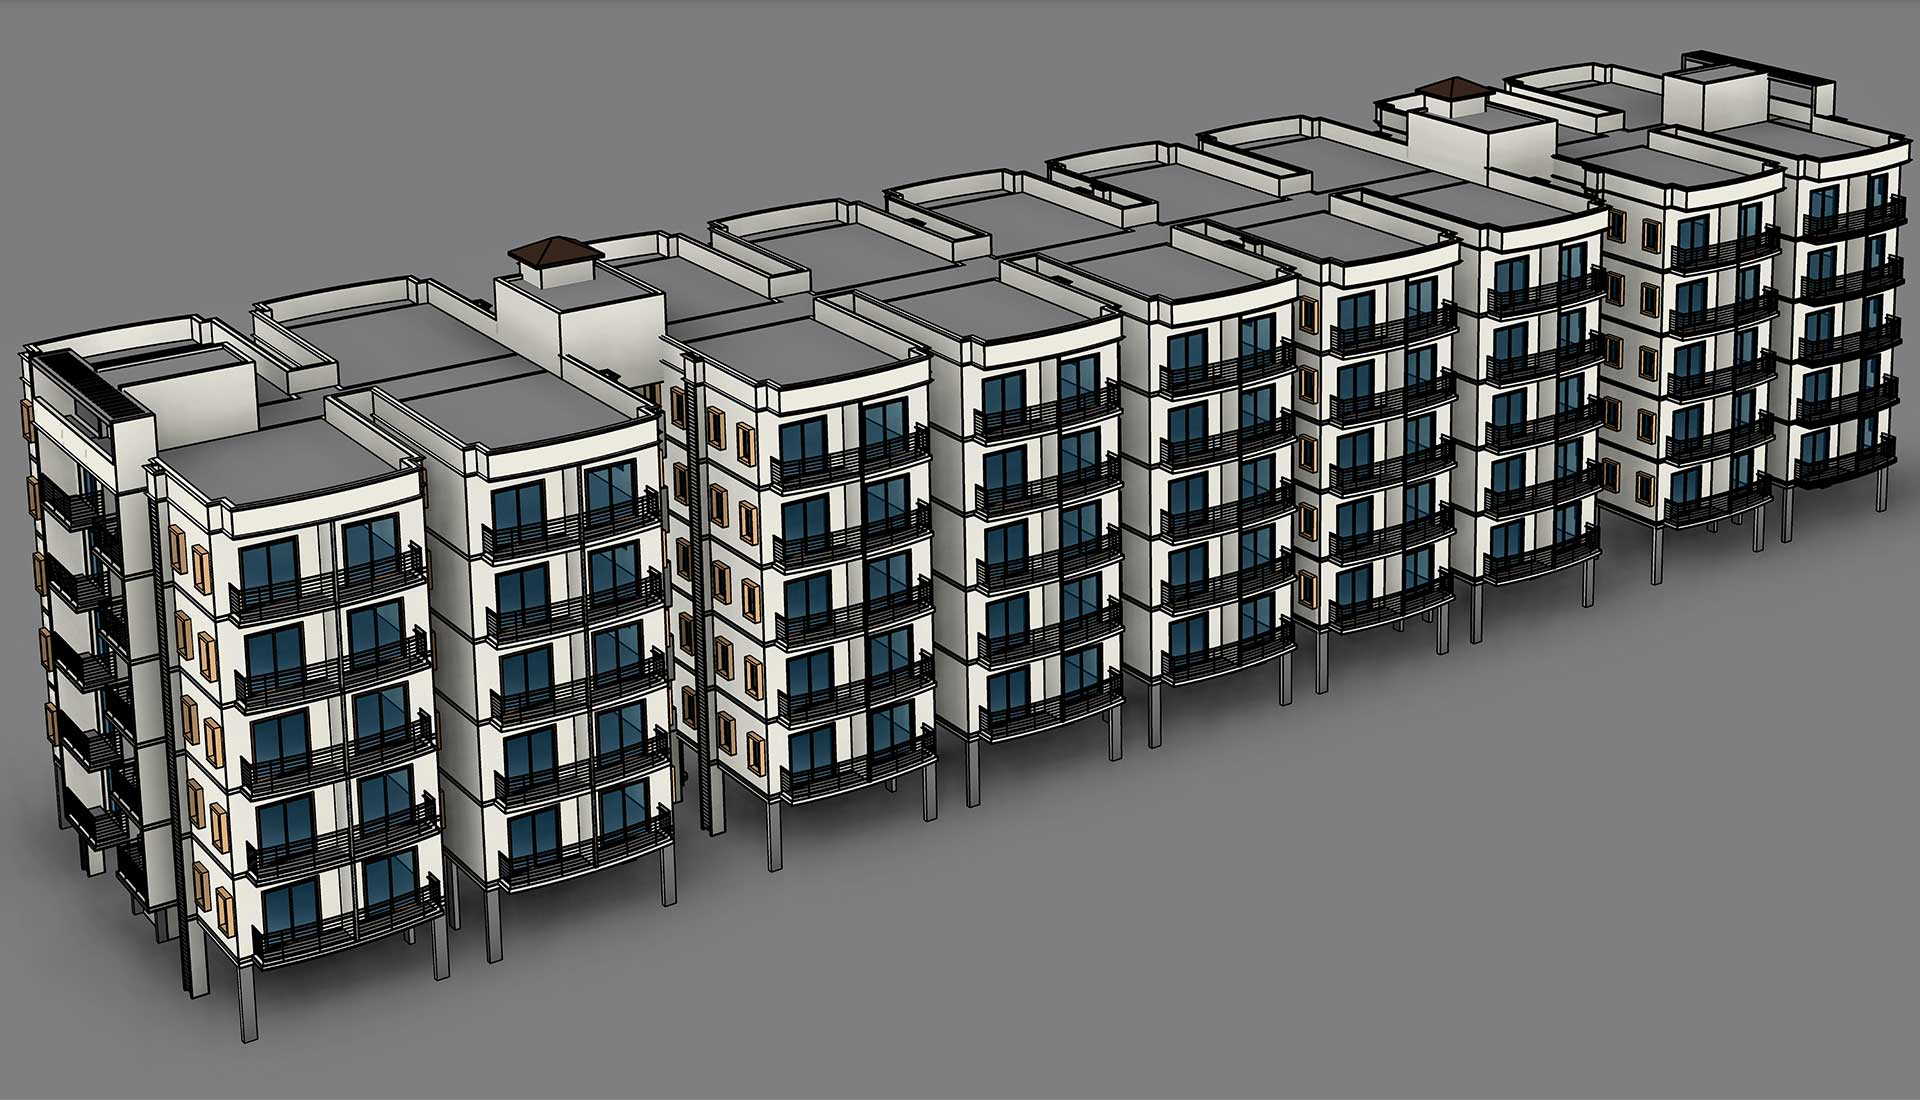 Architecture-Revit-Model_Multi-Residential-Home-Apartments_BIM-Modeling-Project-by-United-BIM